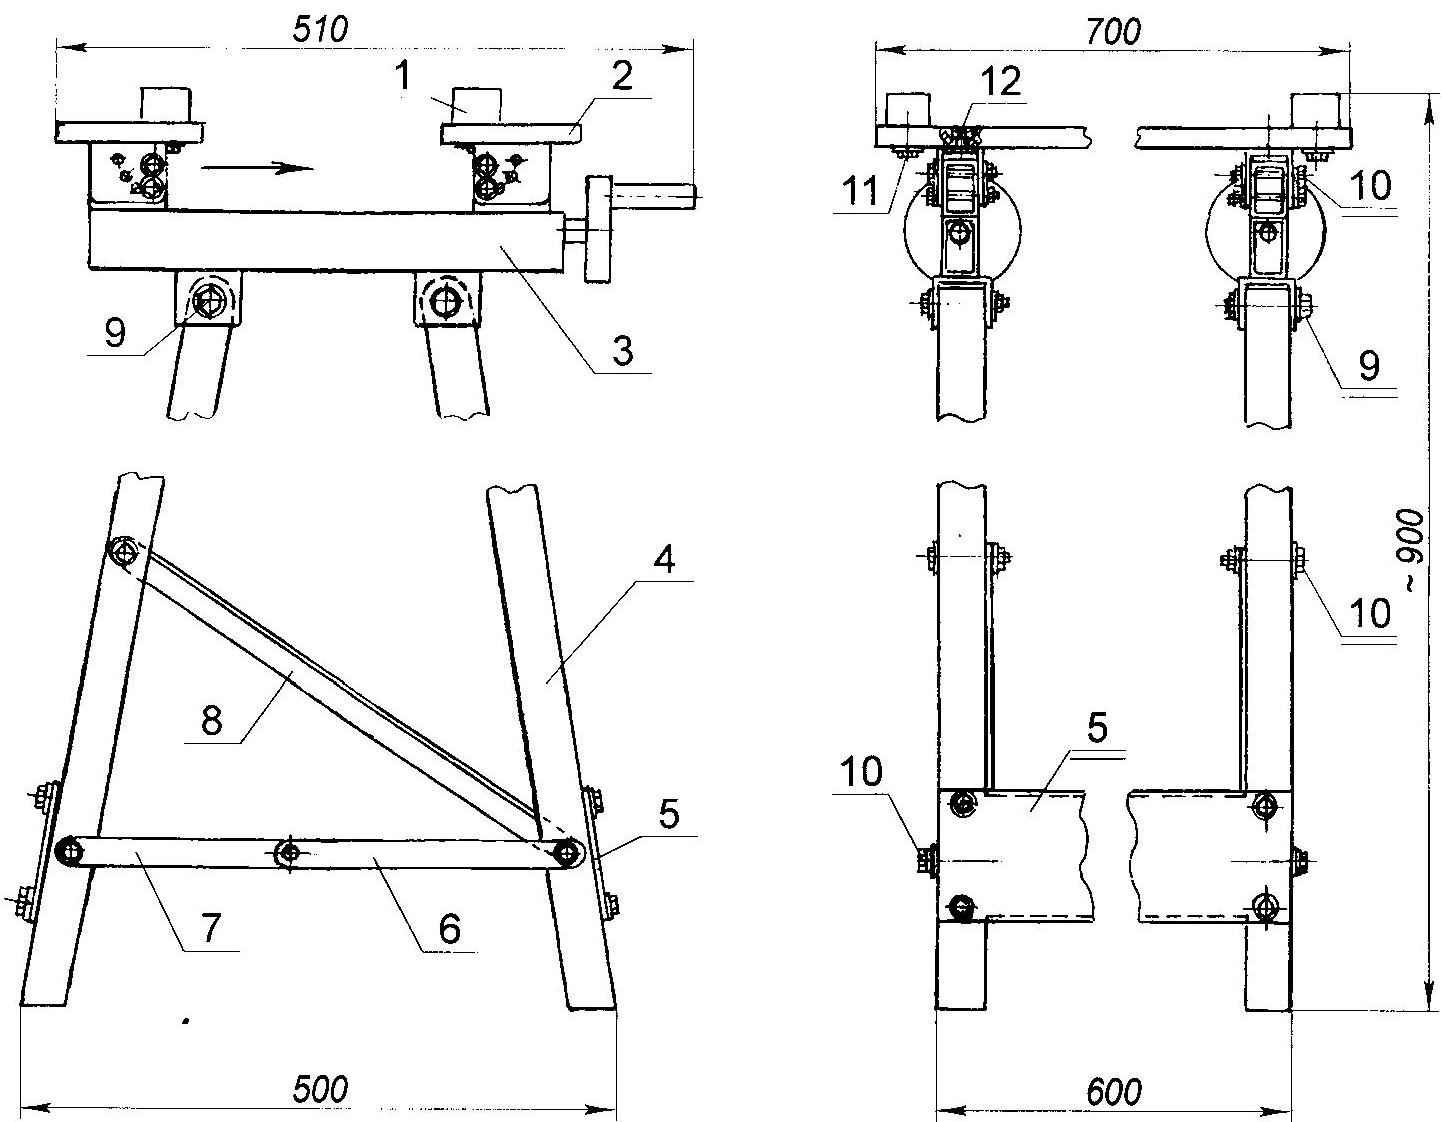 Fig. 1. Folding workbench